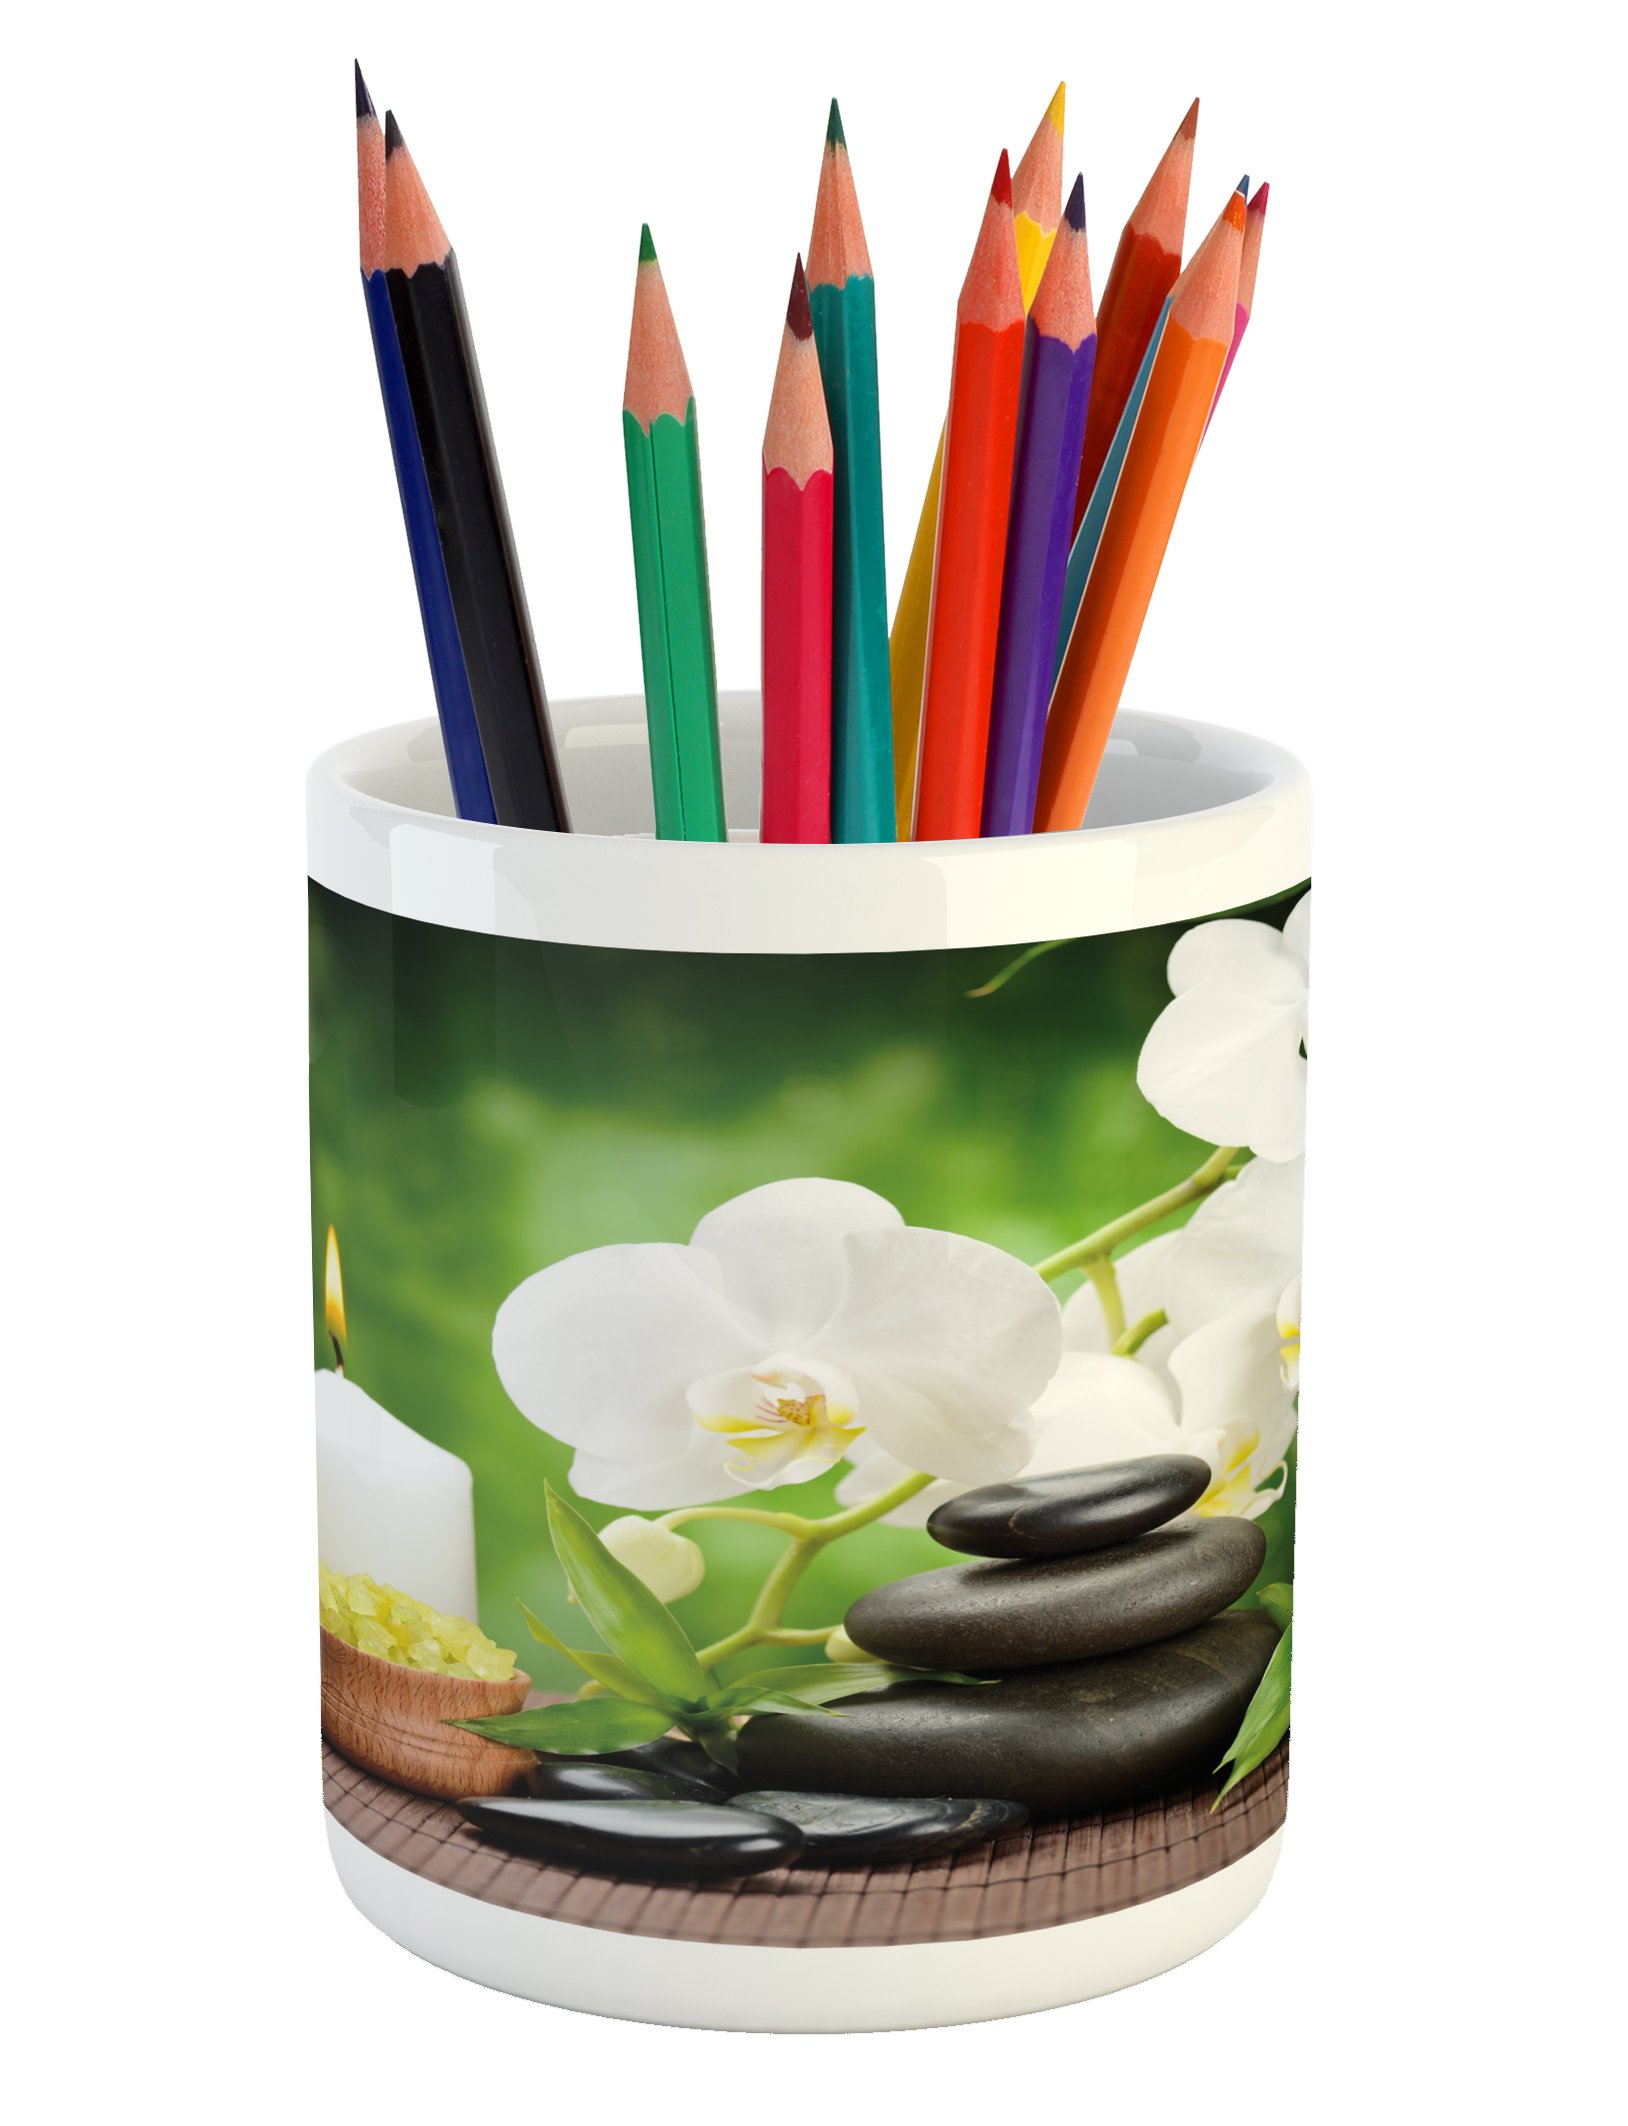 Ambesonne Spa Pencil Pen Holder, Zen Stones with Orchid and Candles Green Plants at the Background Print, Printed Ceramic Pencil Pen Holder for Desk Office Accessory, White Green and Black